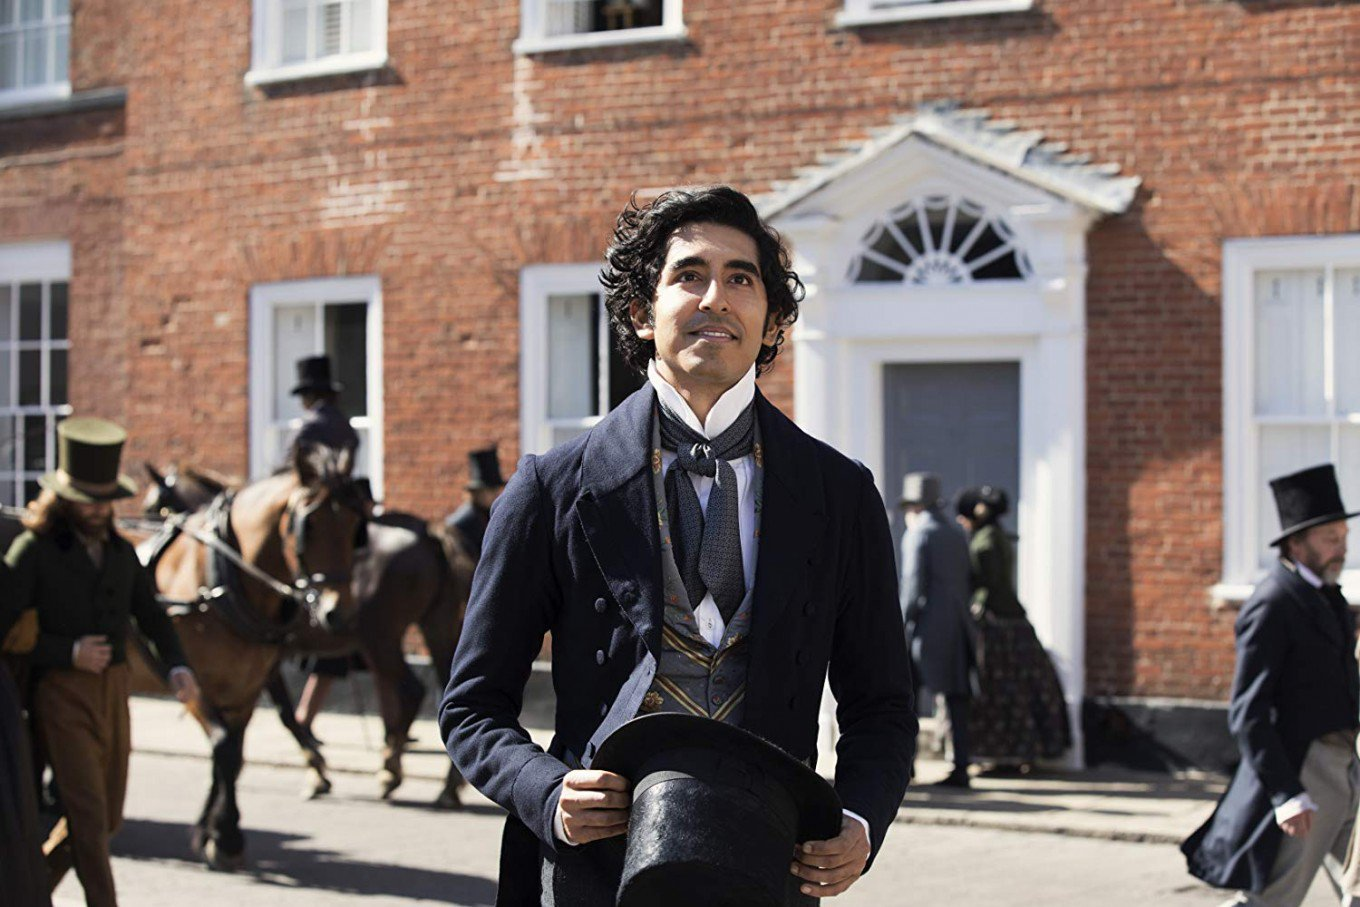 Director Iannucci swaps political comedies for 'modern' 'David Copperfield'